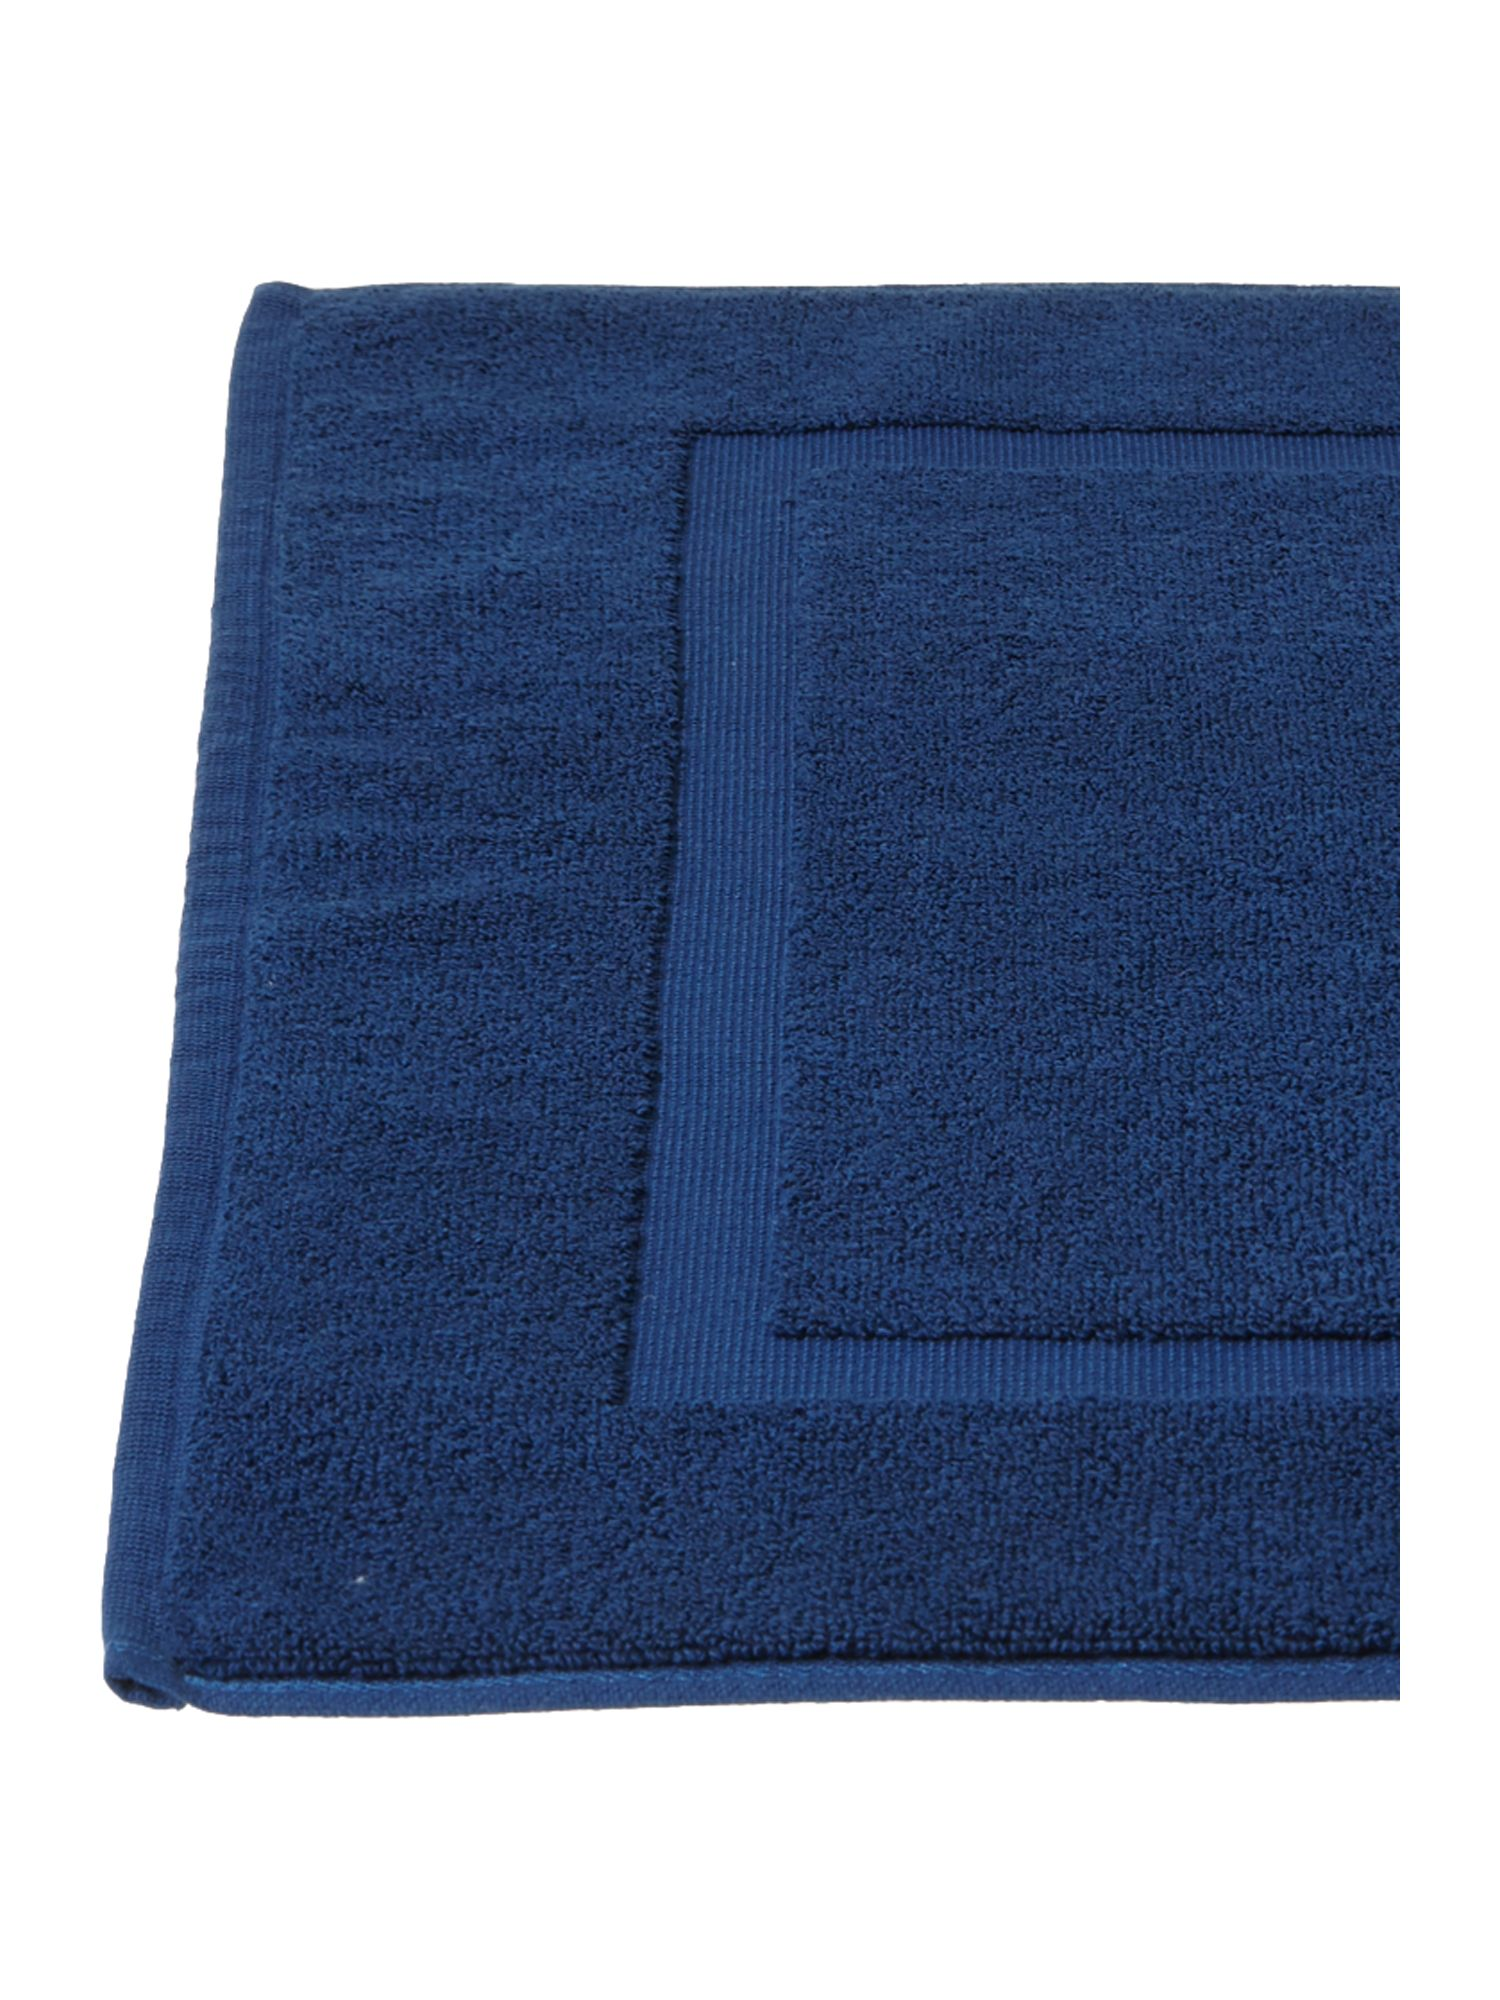 Zero Twist bath mat in navy